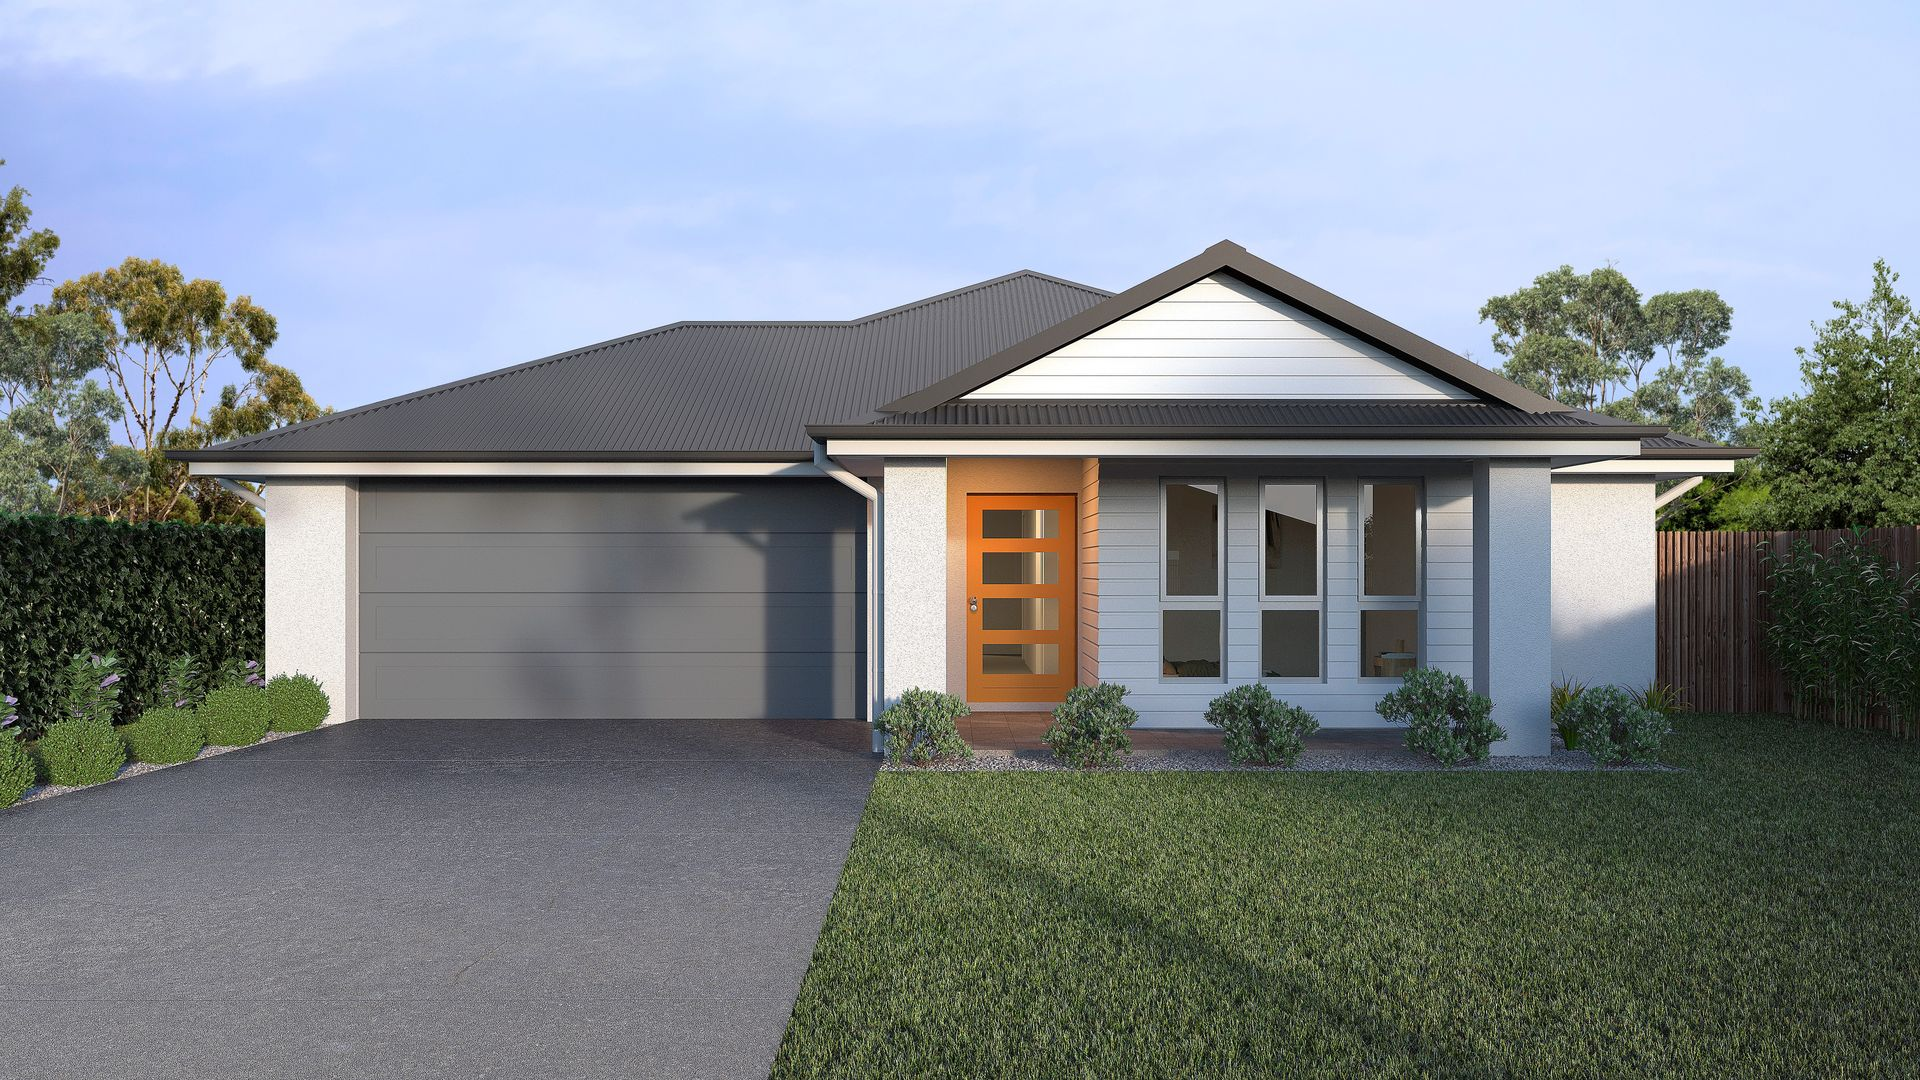 HOME ONLY, Raymond Terrace NSW 2324, Image 0